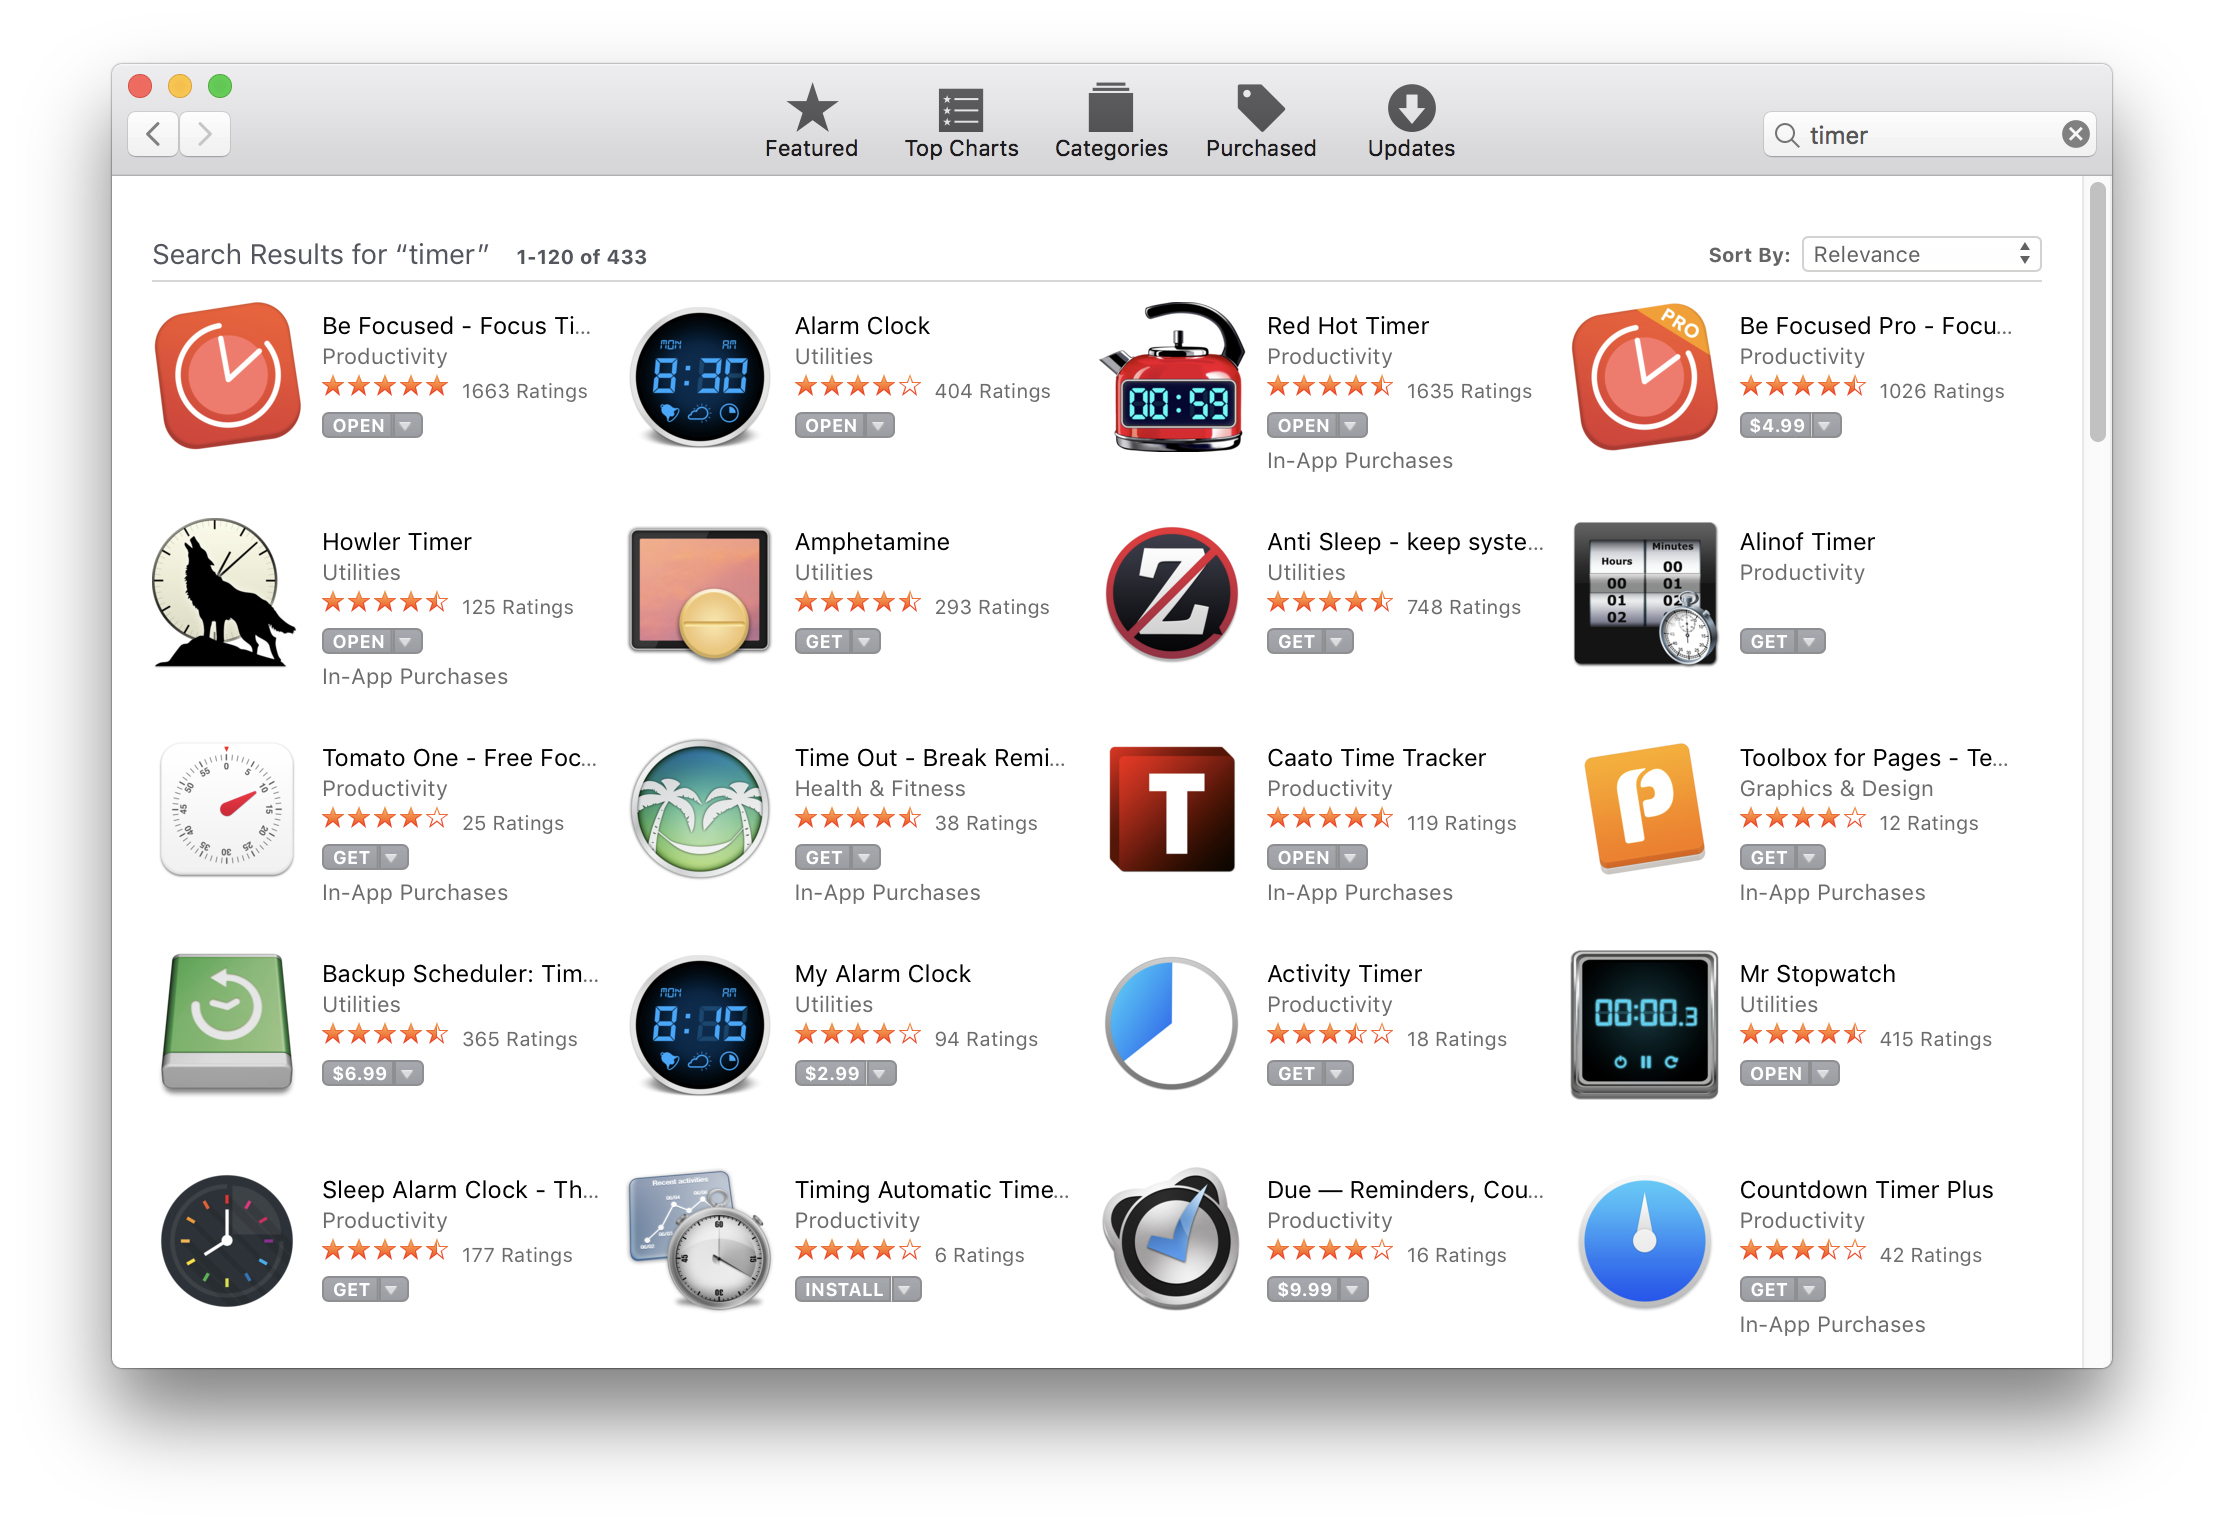 433 timer apps on the Mac App Store